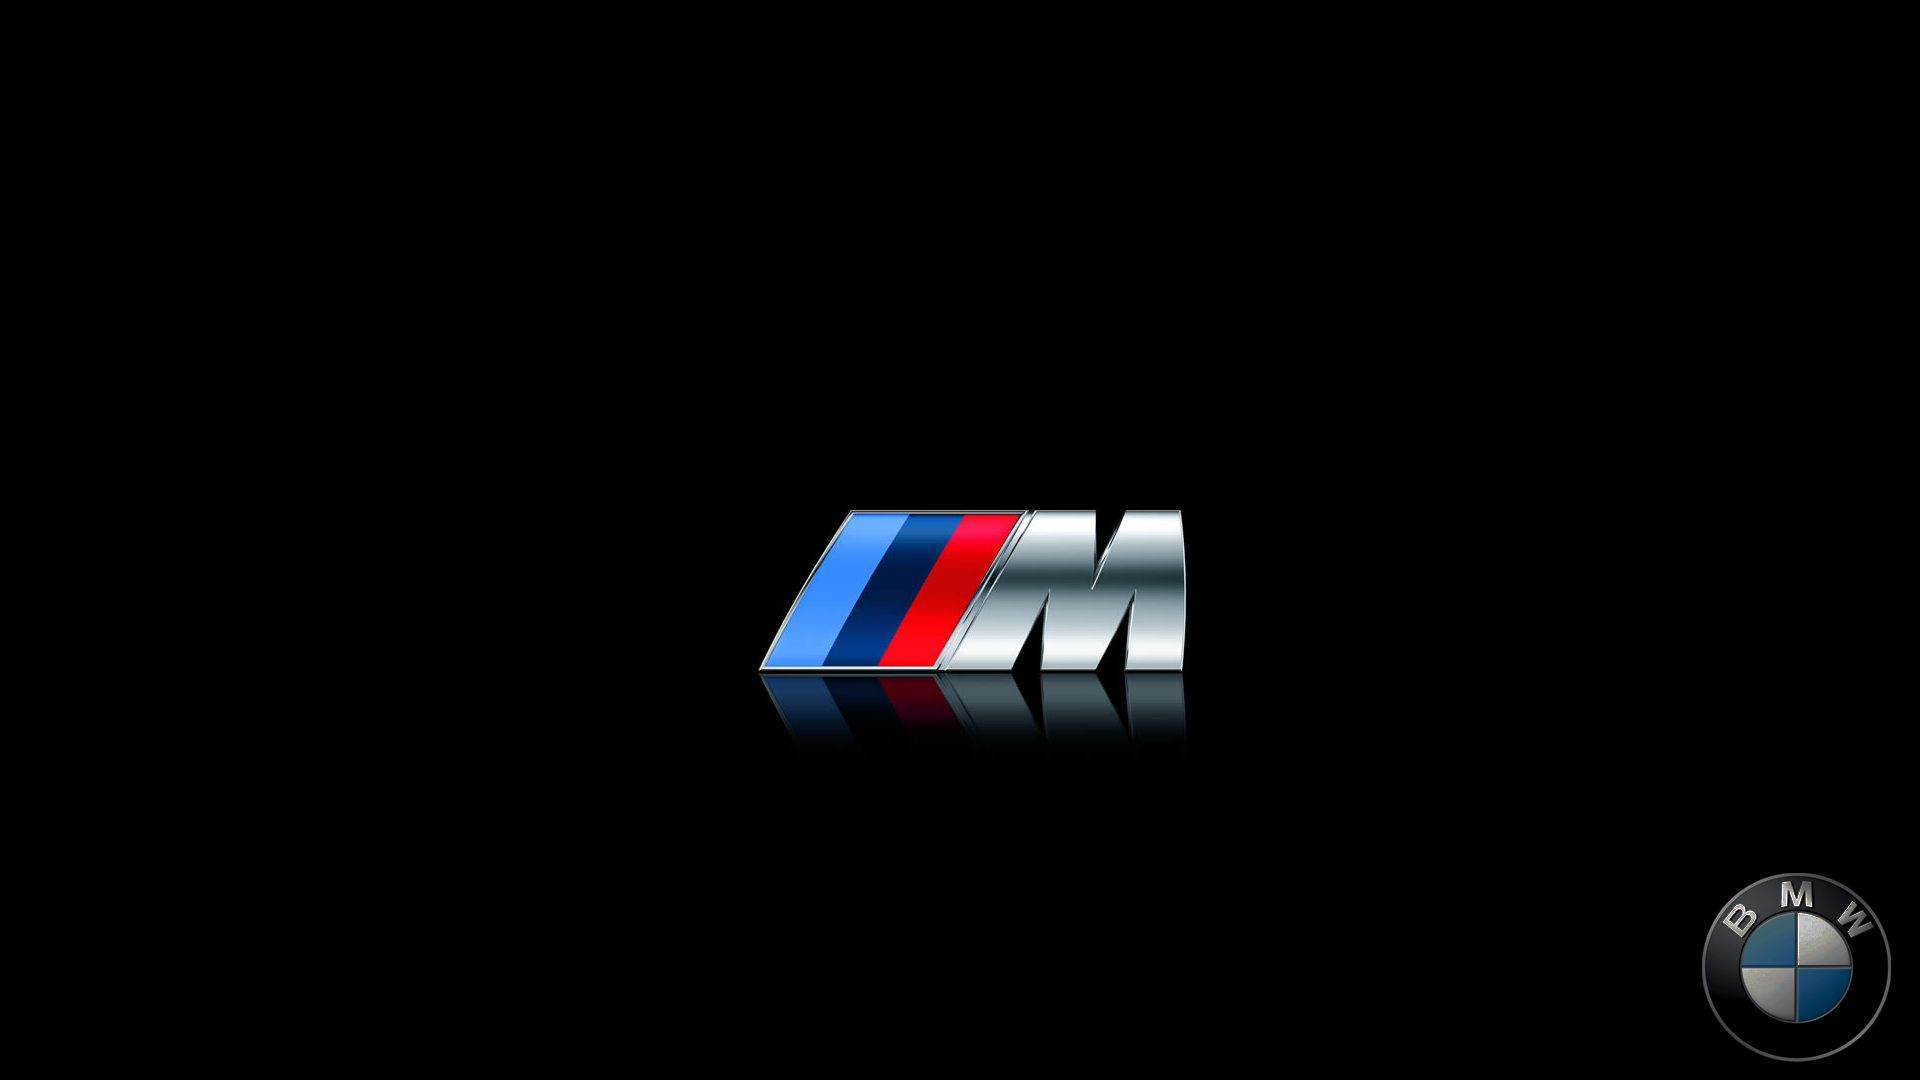 Bmw M Logo Wallpapers Wallpaper Cave All Wallpapers Wallpaper